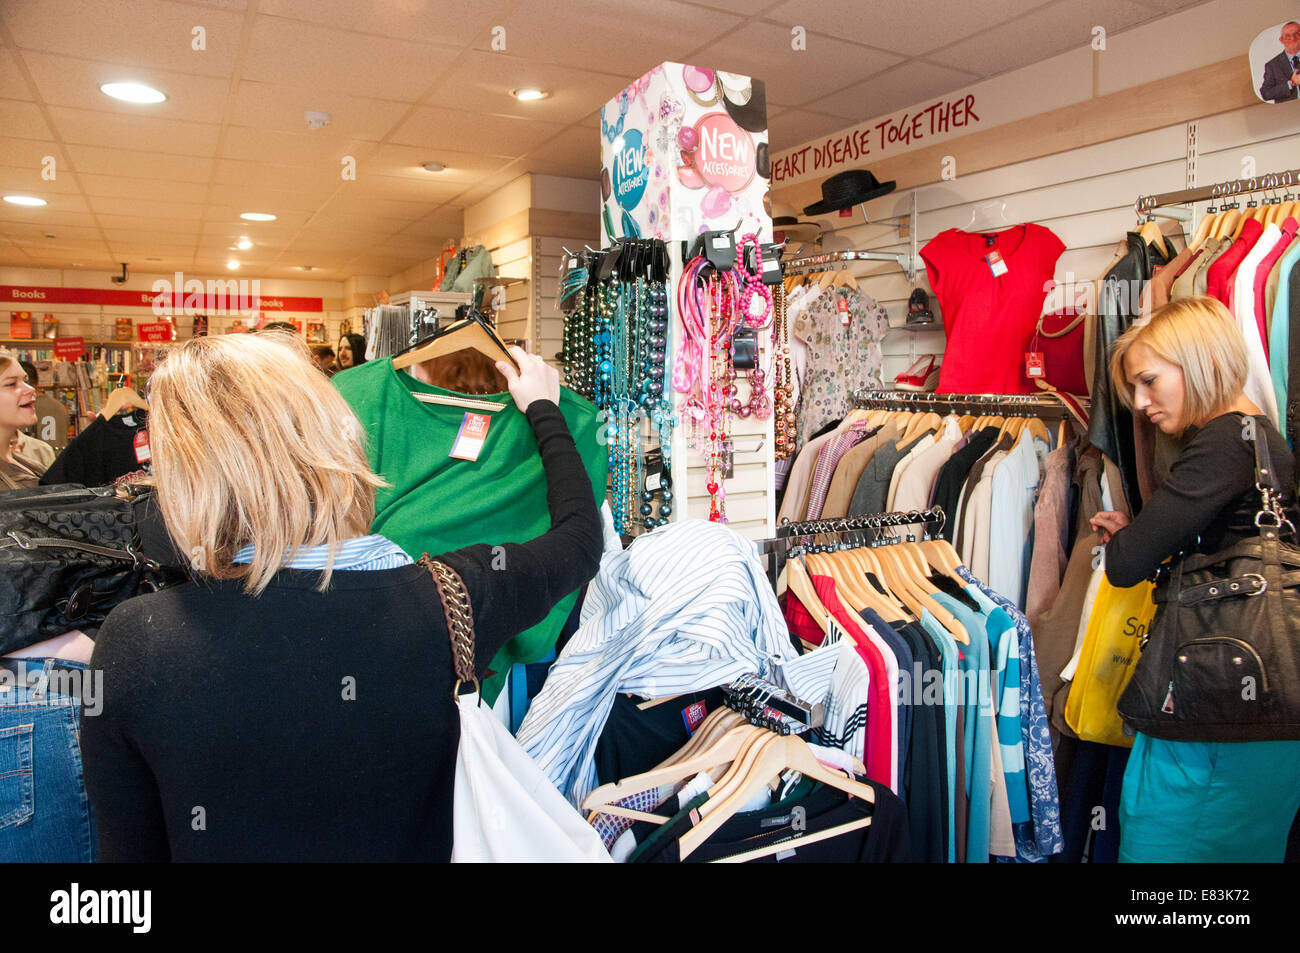 People shopping in Oxfam charity shop, London, England, UK - Stock Image